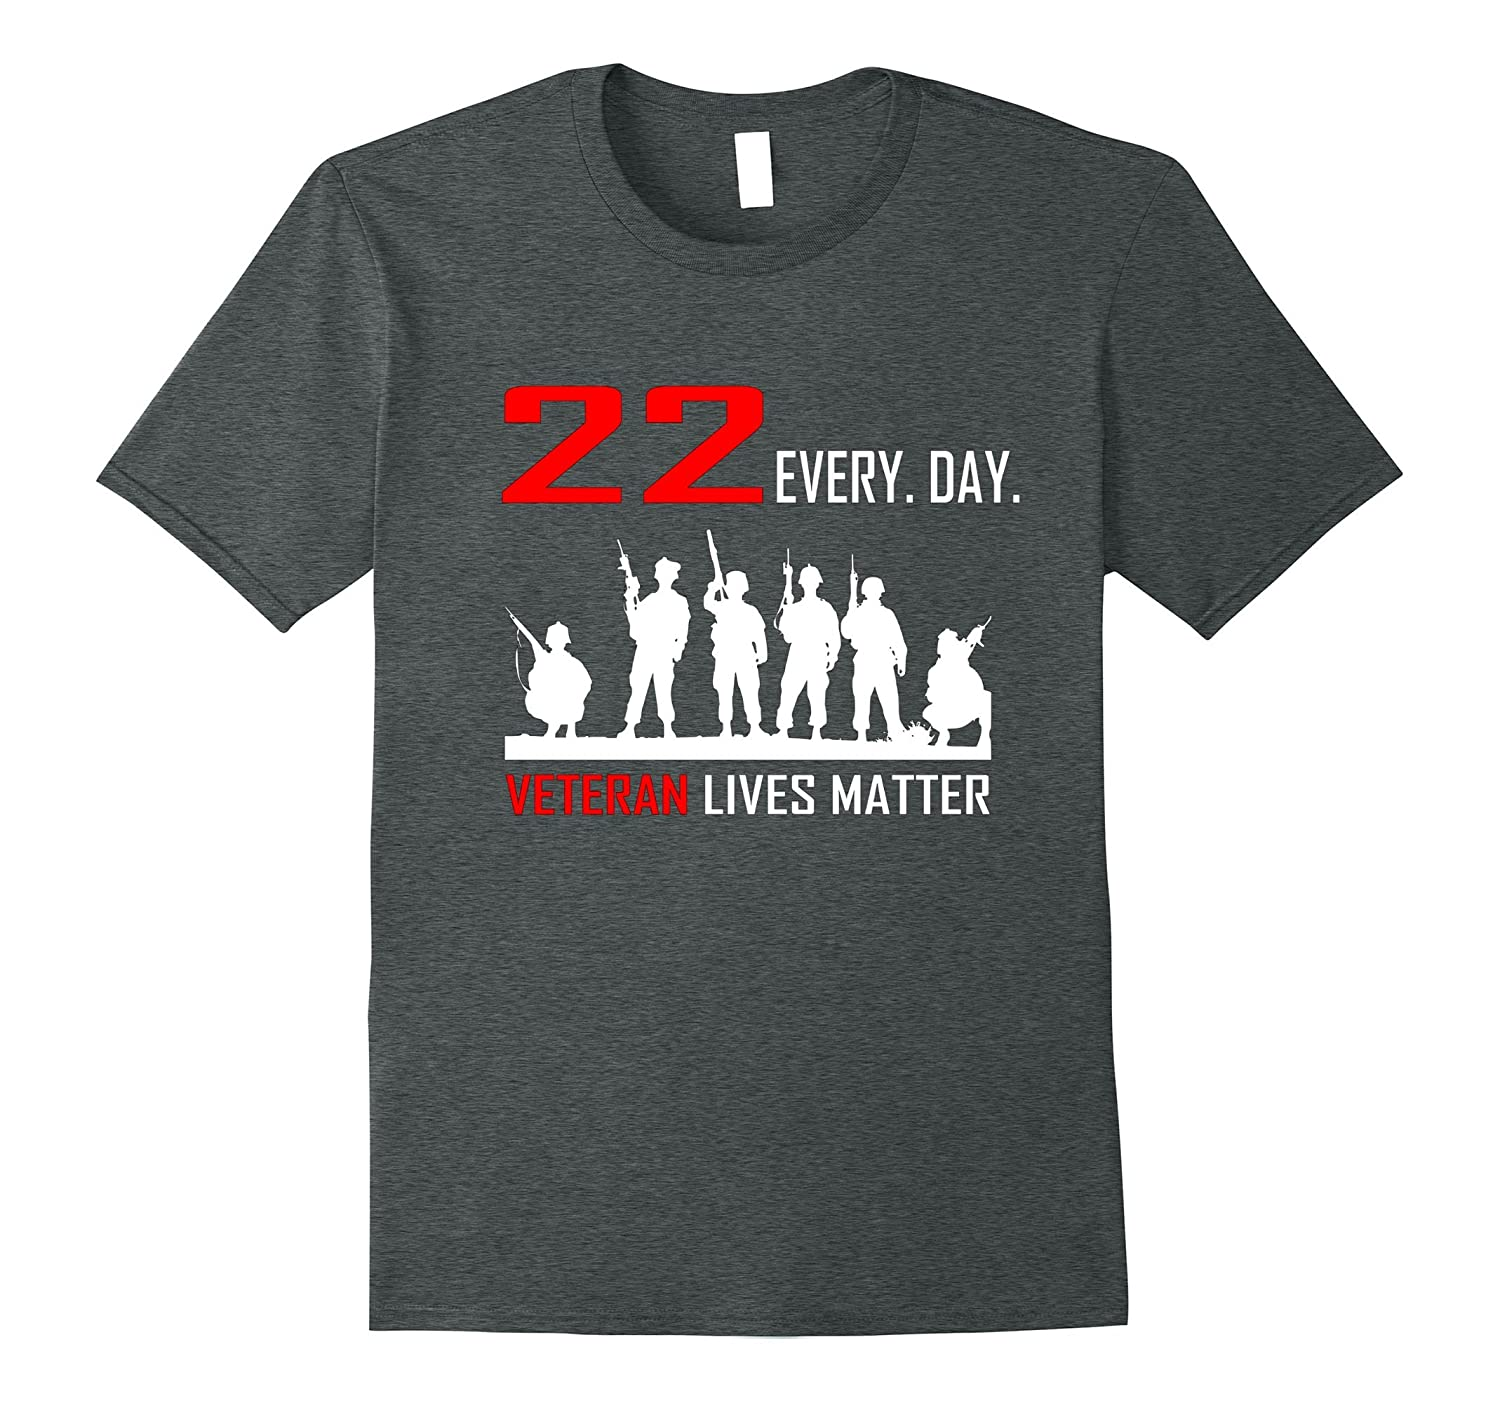 22 EVERY. DAY. Veteran Lives Matter Military T Shirt-Rose